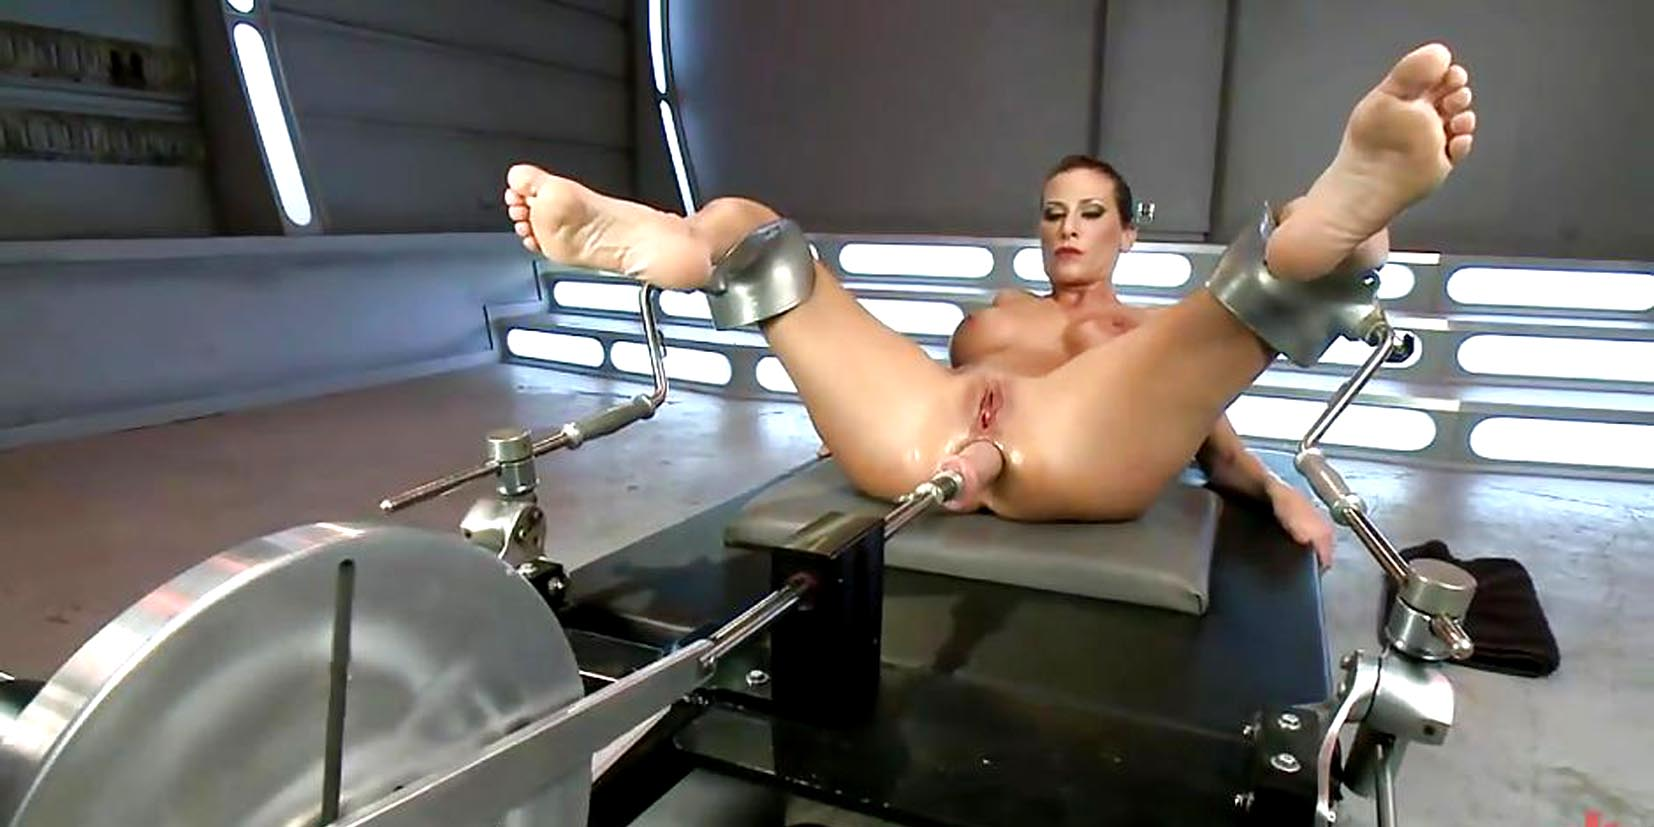 A Fucking Machine Workshop For Two Hotties